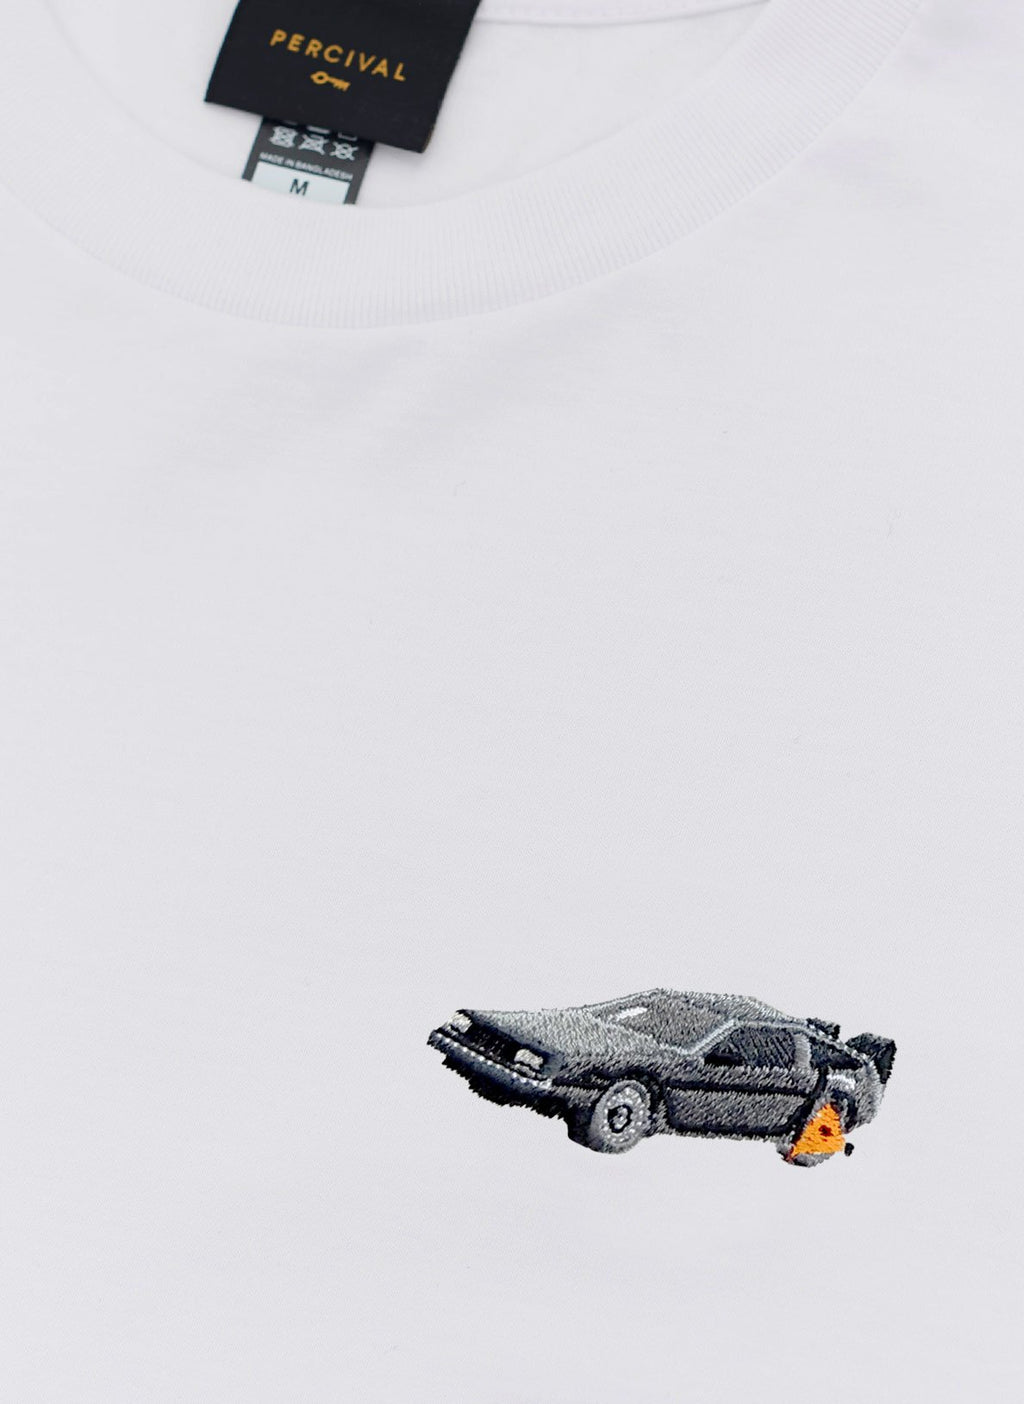 T Shirt | Clamped DeLorean | White